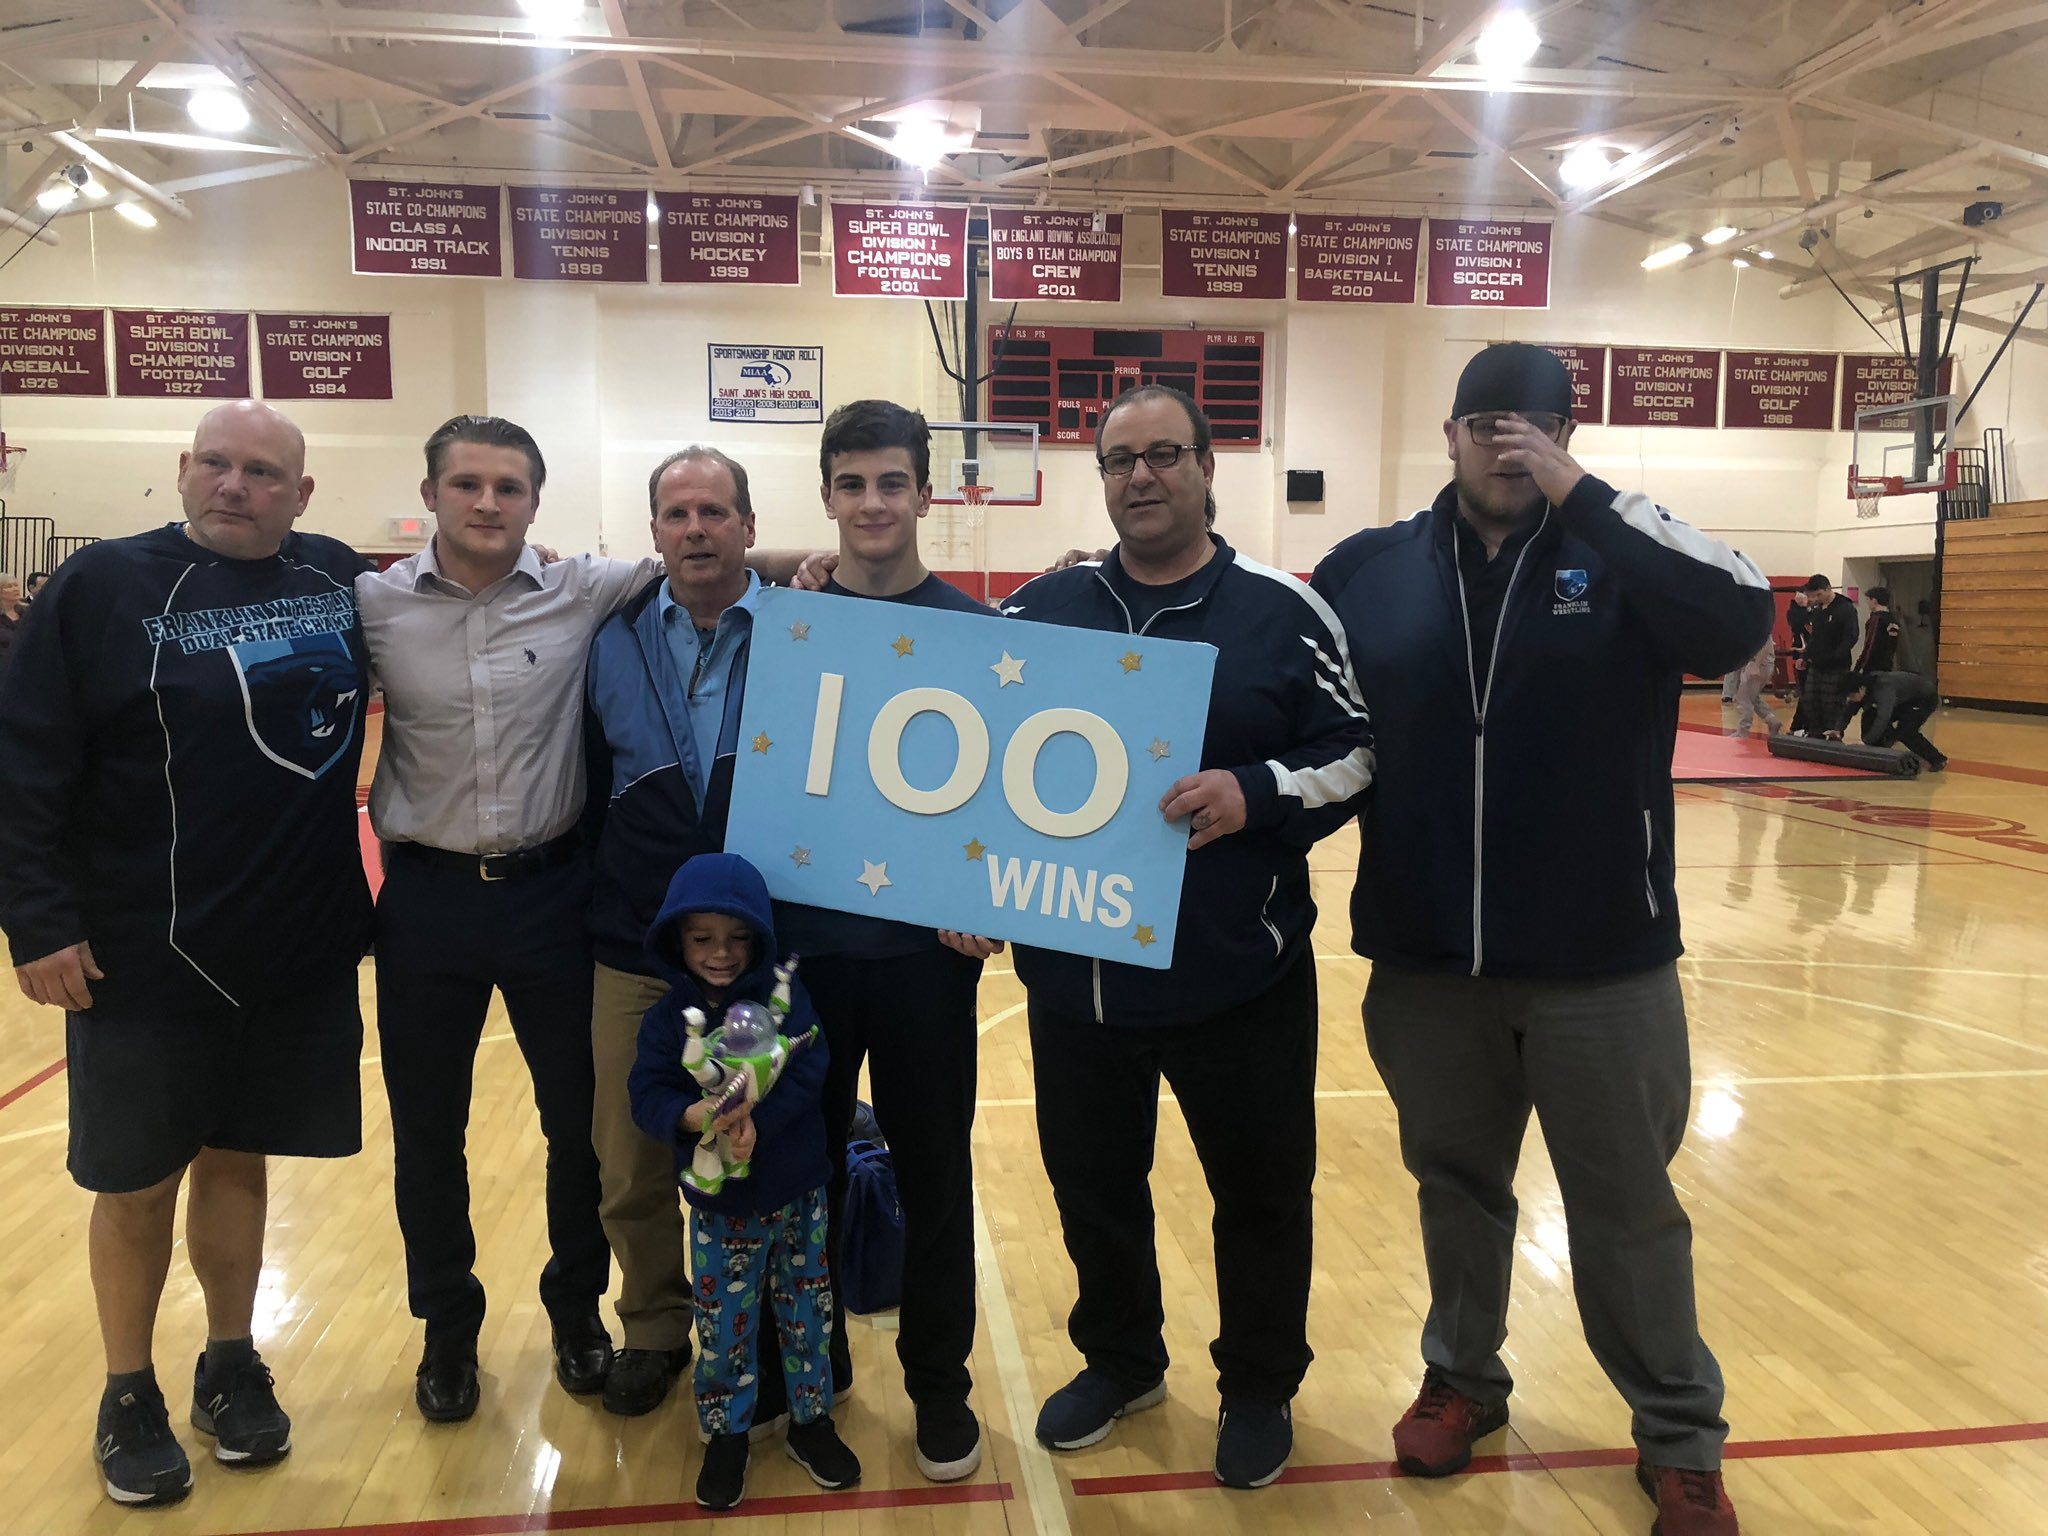 Congrats to Kenny Sauer on his 100th win! (@FHSWrestling photo)